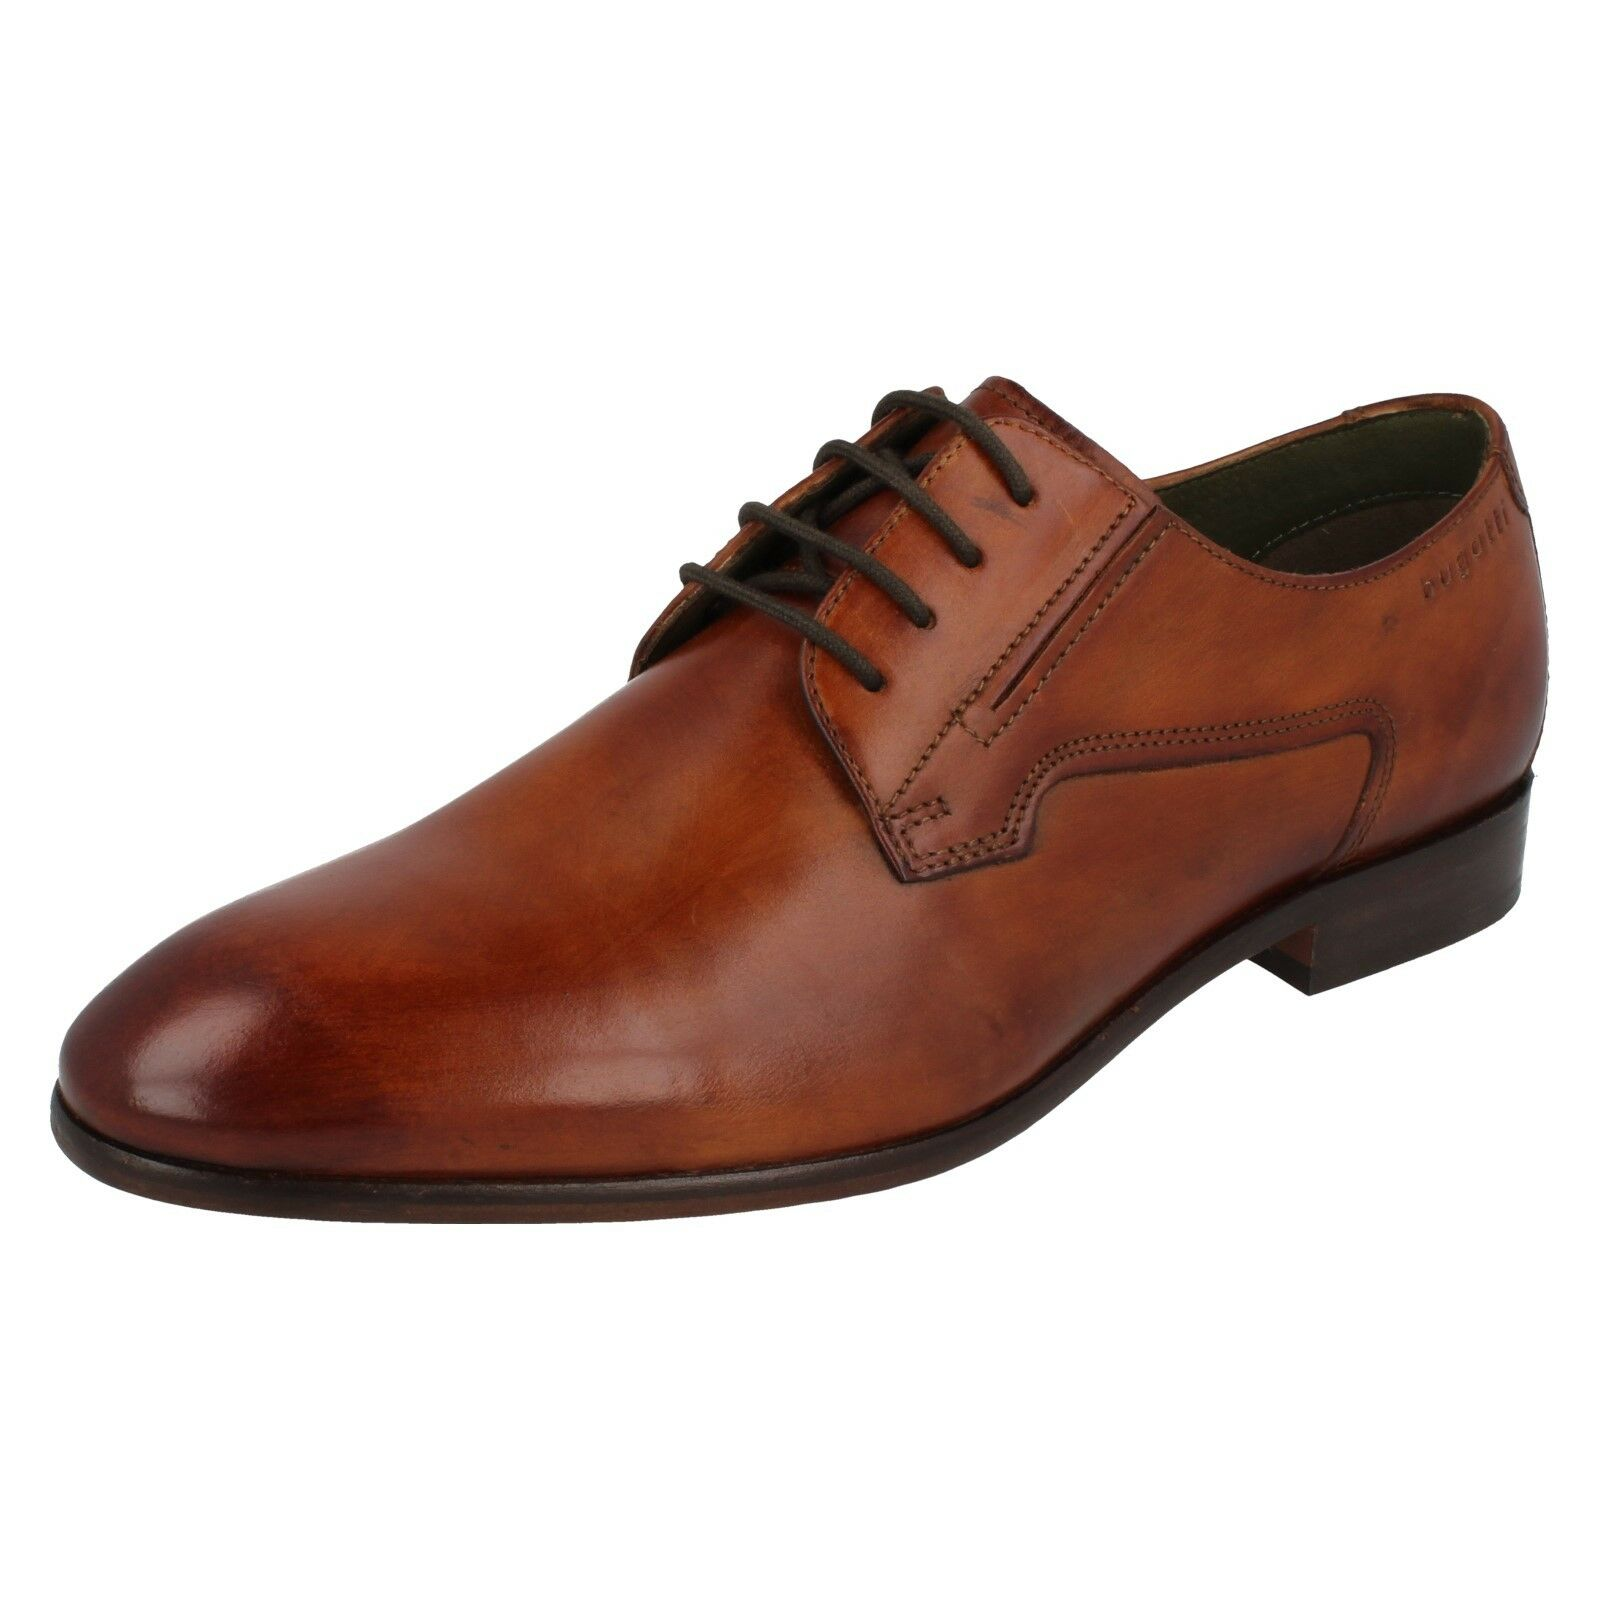 Mens Bugatti Cognac Lace Up Leather Formal Smart Shoes 311-41901